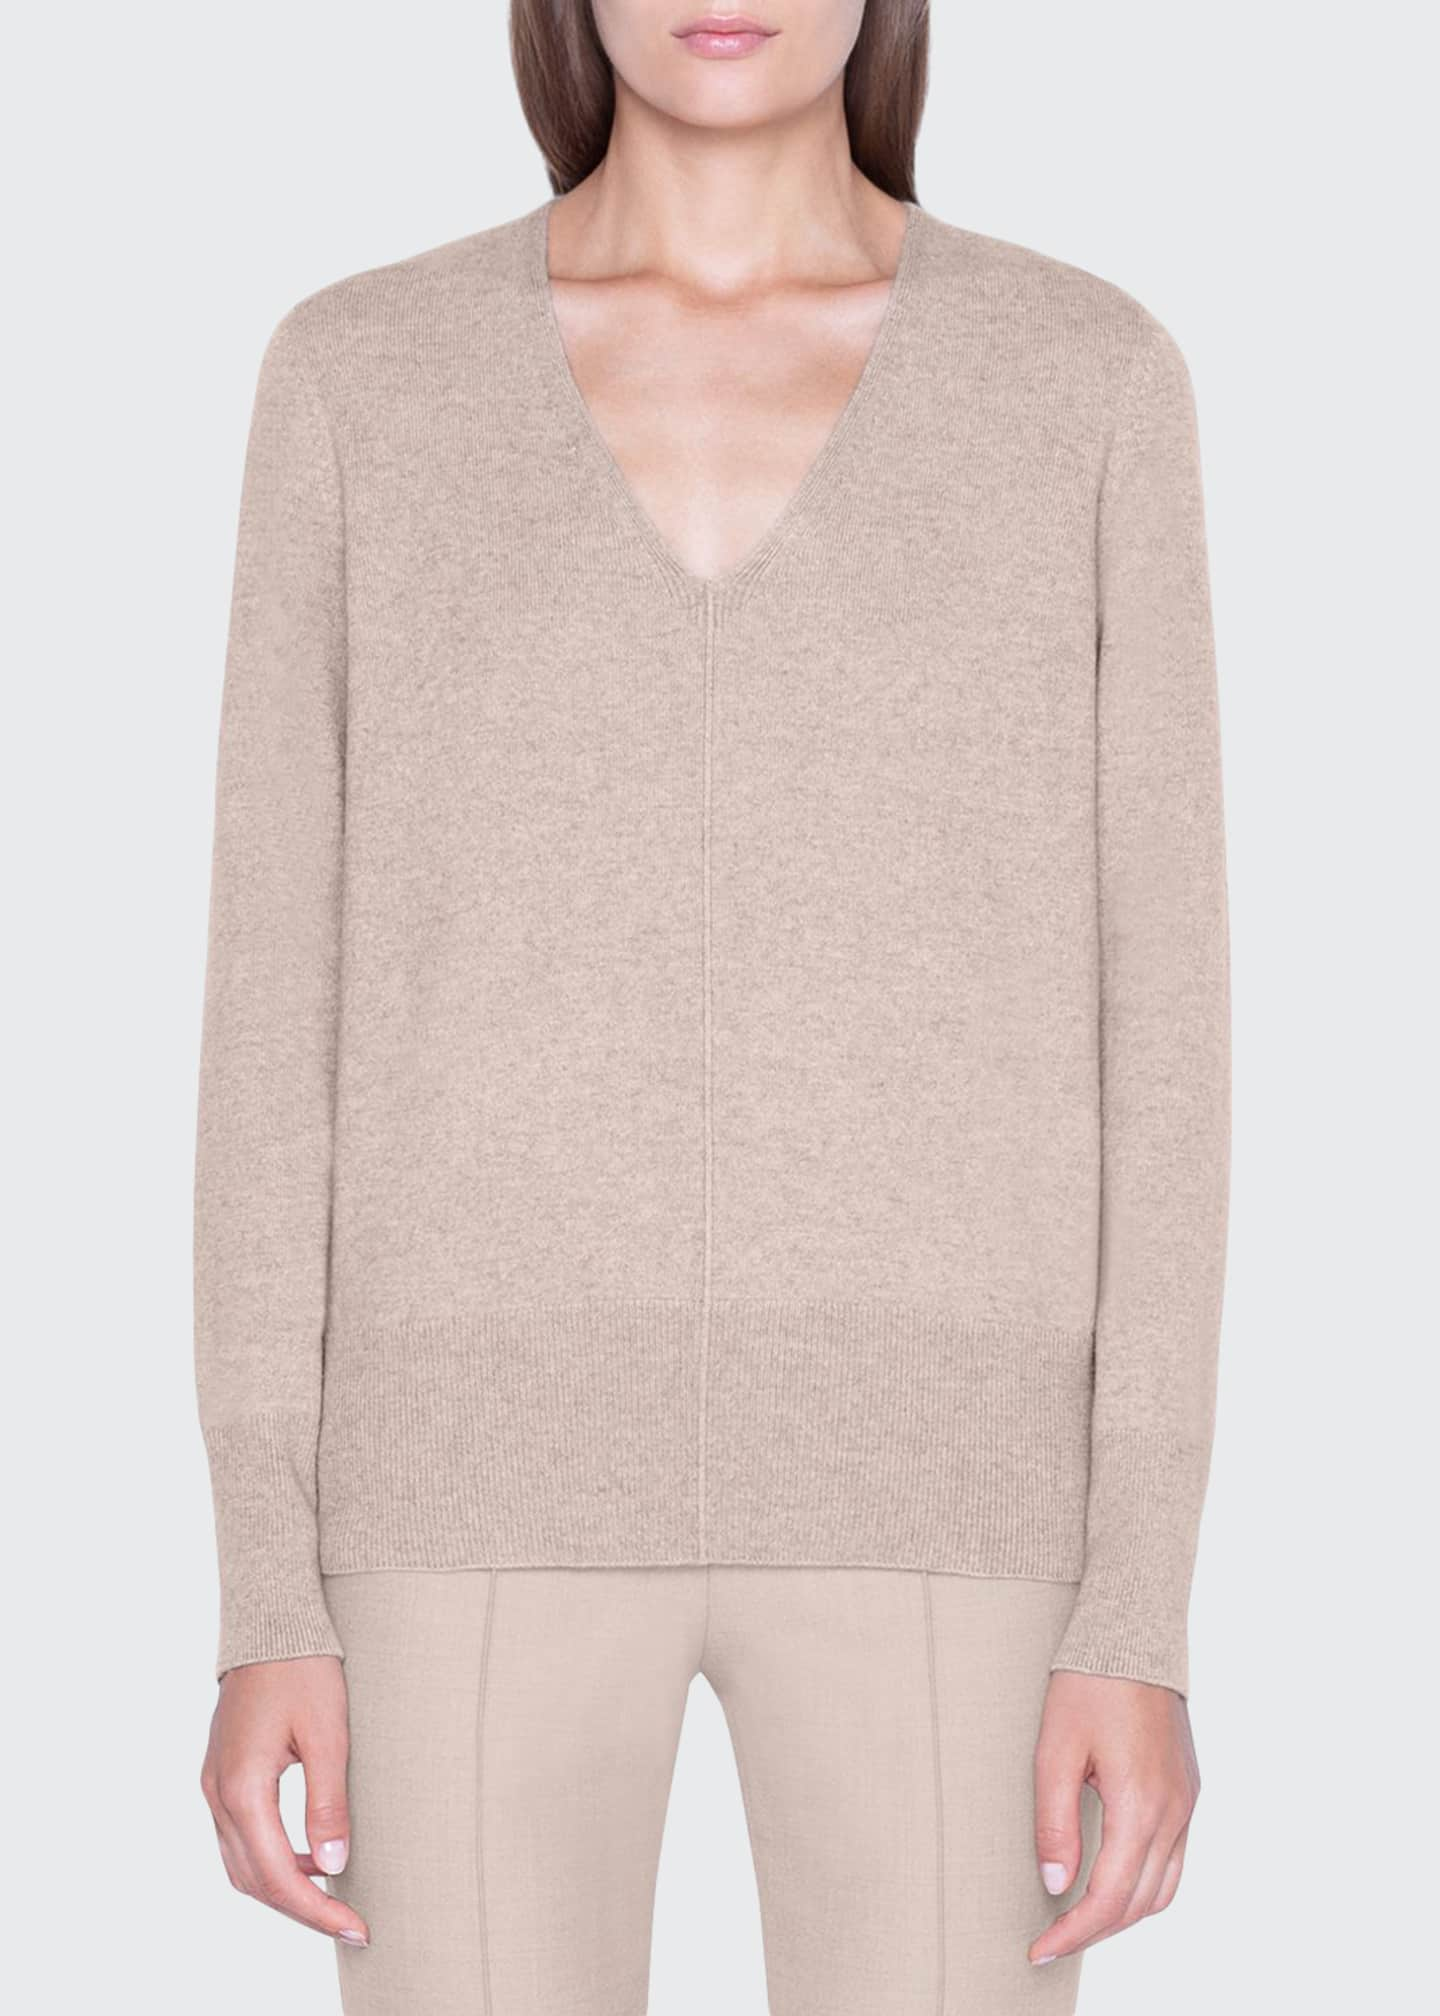 Akris Cashmere V-Neck Sweater